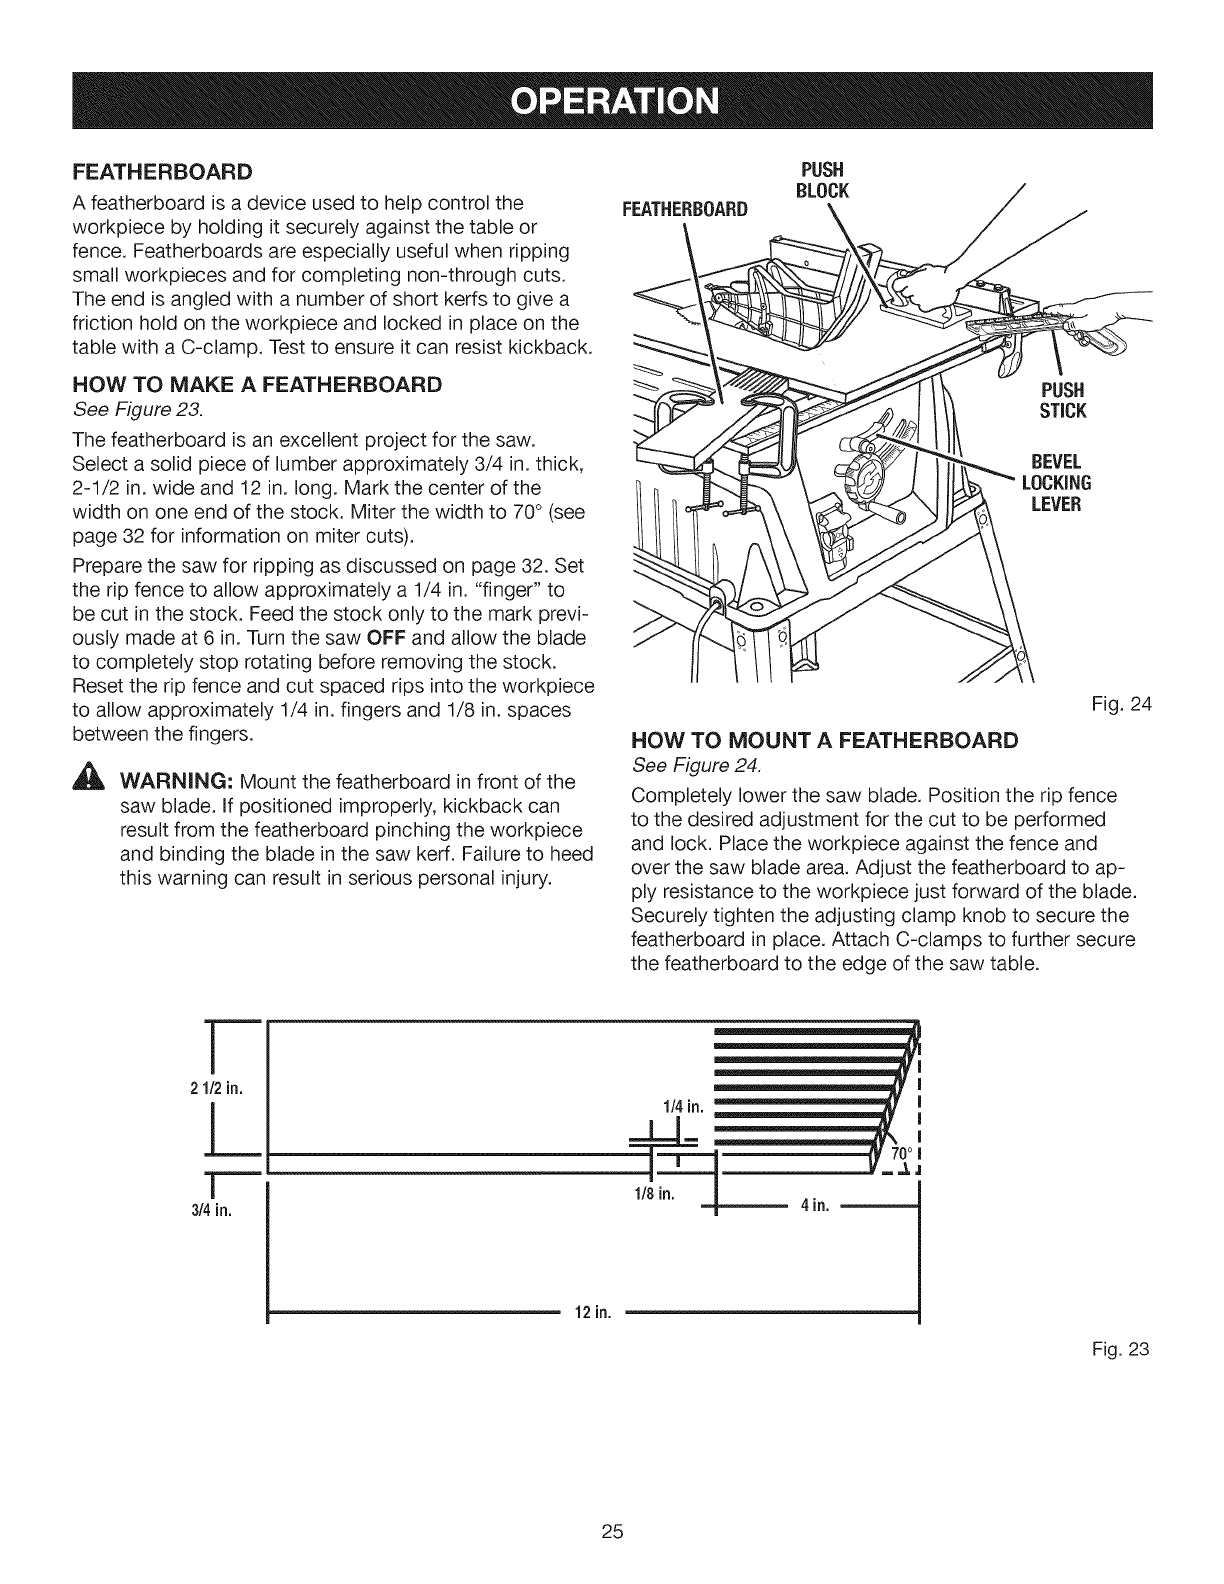 Page 25 of Craftsman Saw 315.28461 User Guide